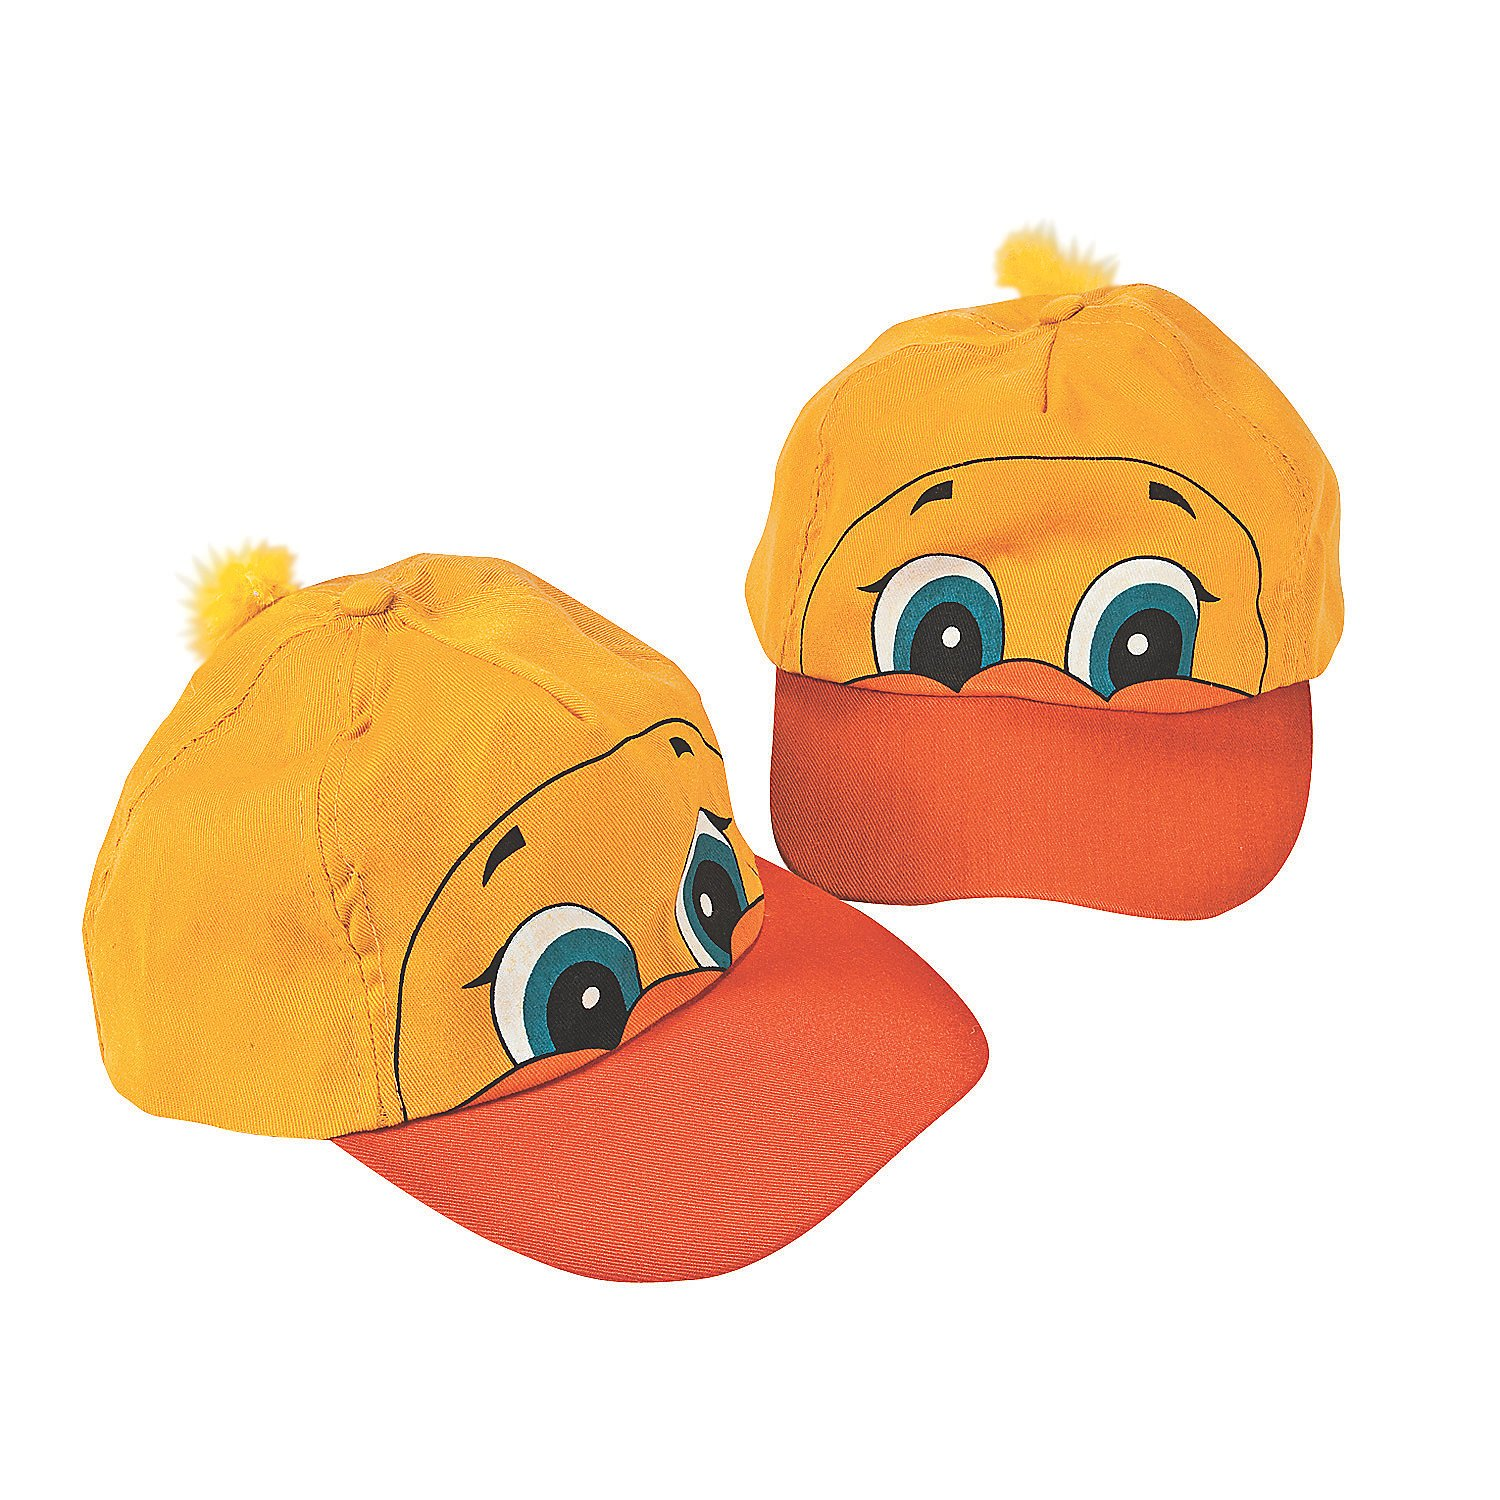 c2b60d144a0 Amazon.com  Fun Express - Luau Ducky Shaped Baseball Cap for Party -  Apparel Accessories - Hats - Baseball Caps - Party - 1 Piece  Clothing